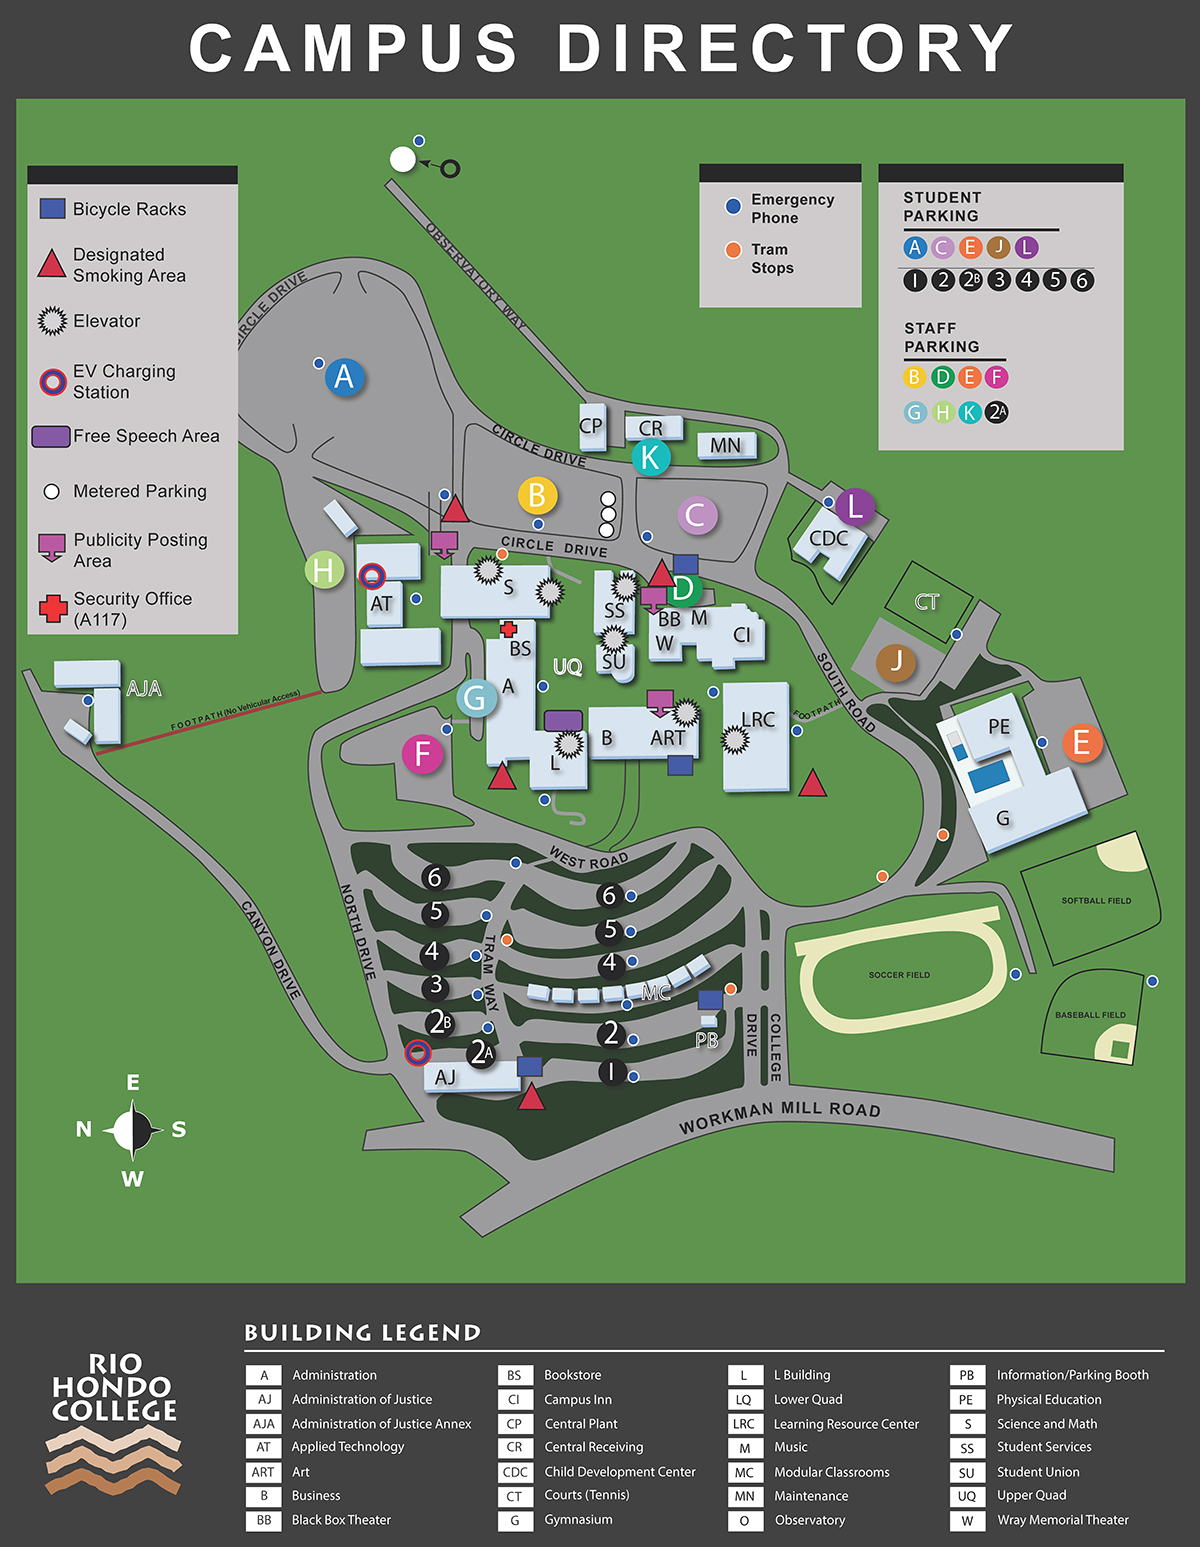 Rio Hondo Campus Map Directions, Maps, & Transportation | Rio Hondo College Rio Hondo Campus Map